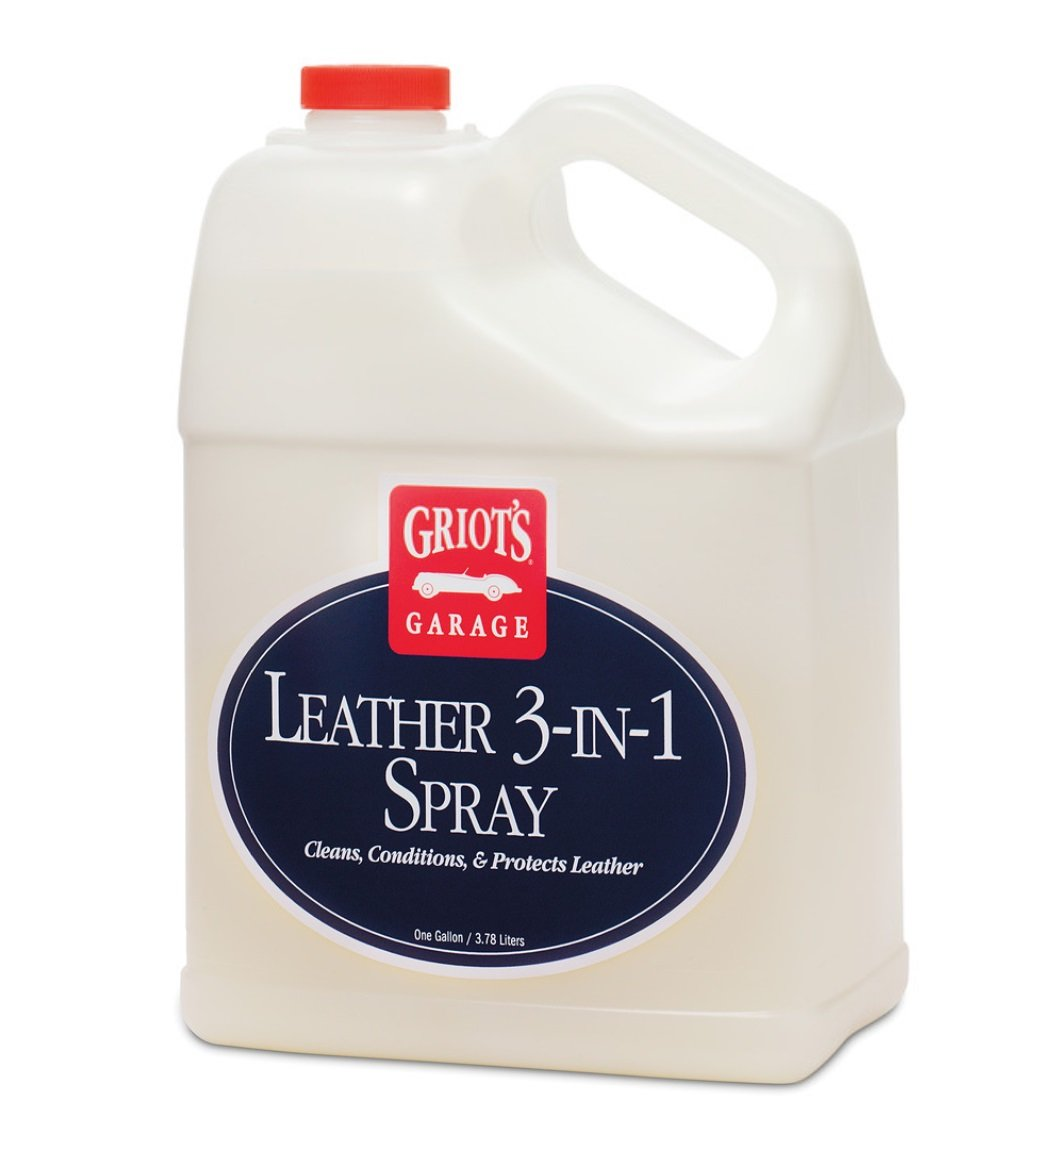 Griot's Garage 10964 Leather 3-In-1 Spray Gallon